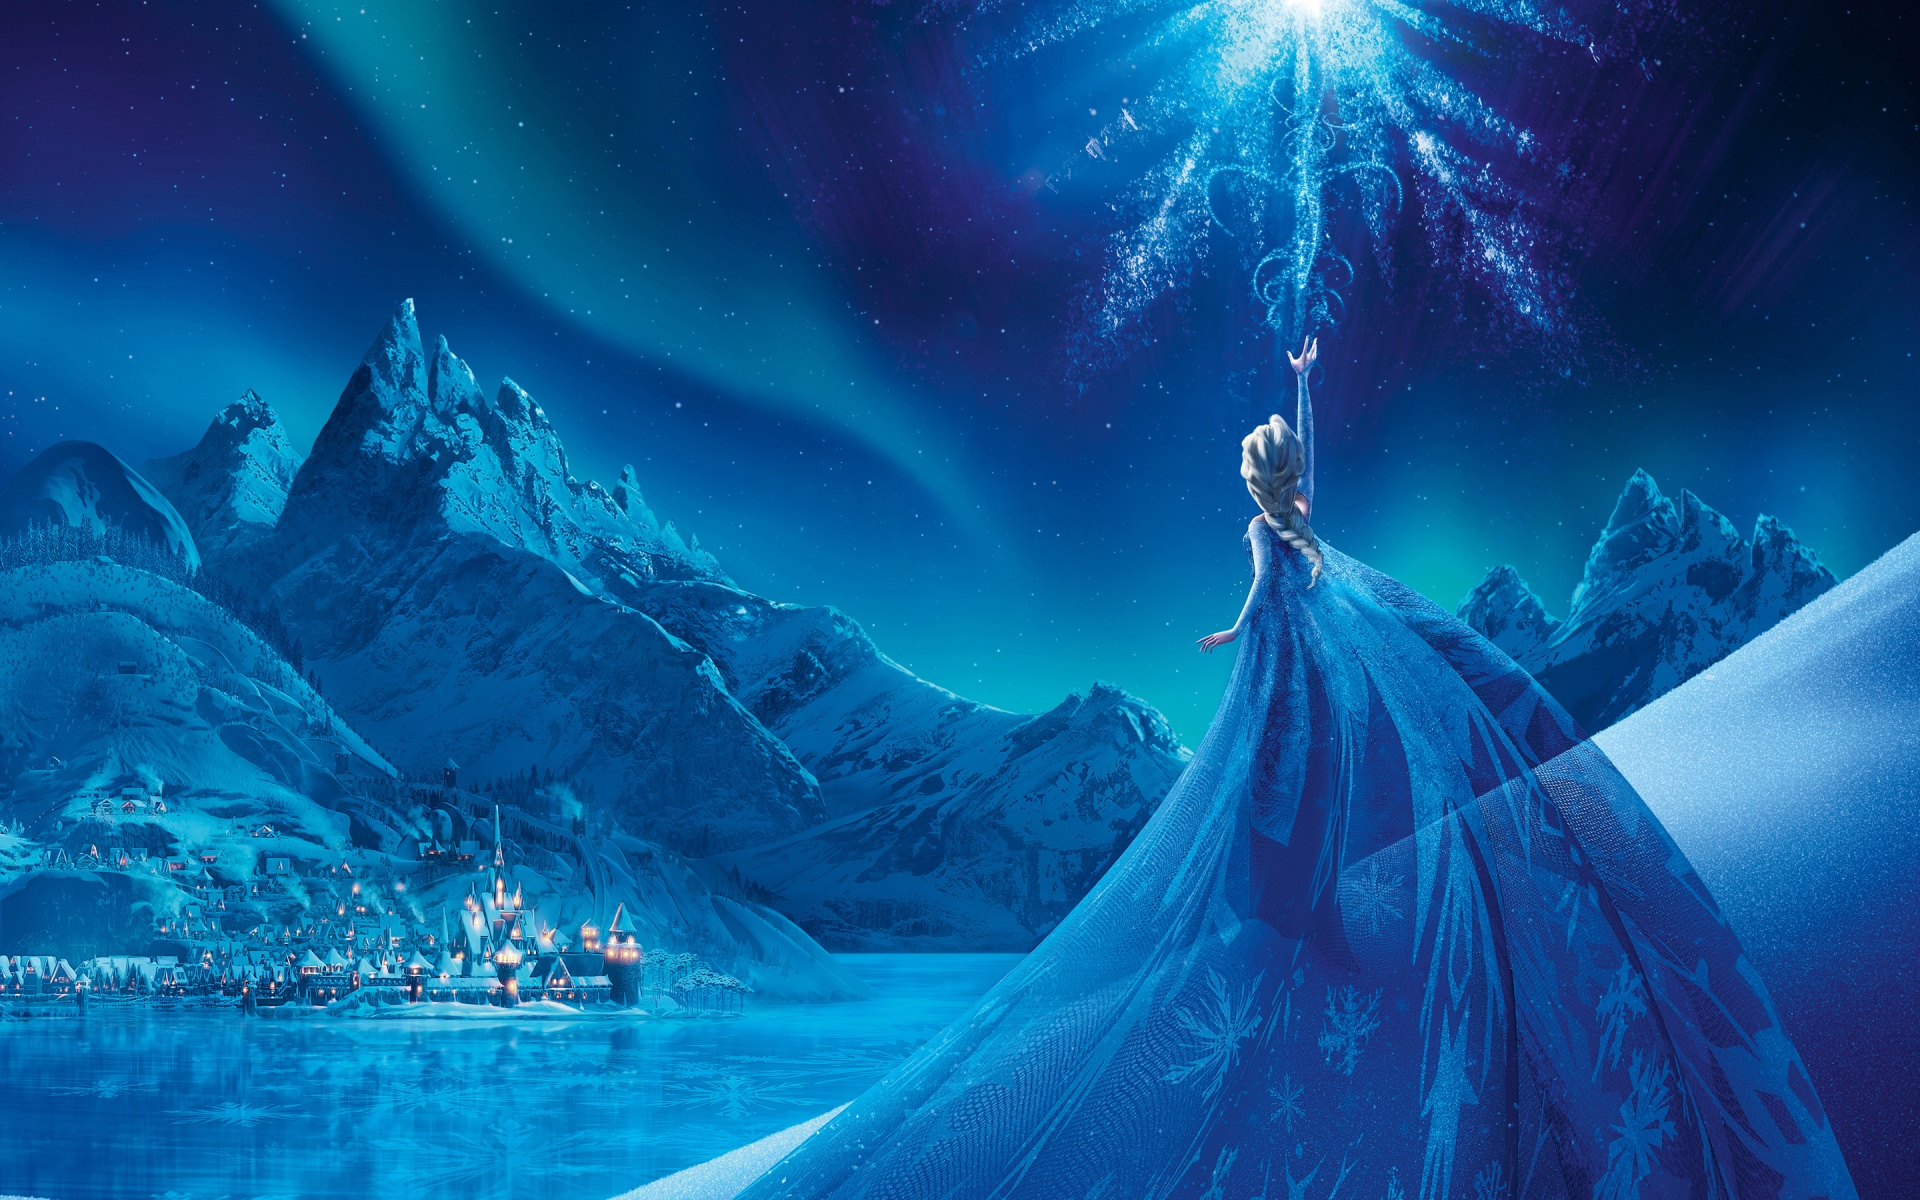 Frozen wallpapers 1920x1200